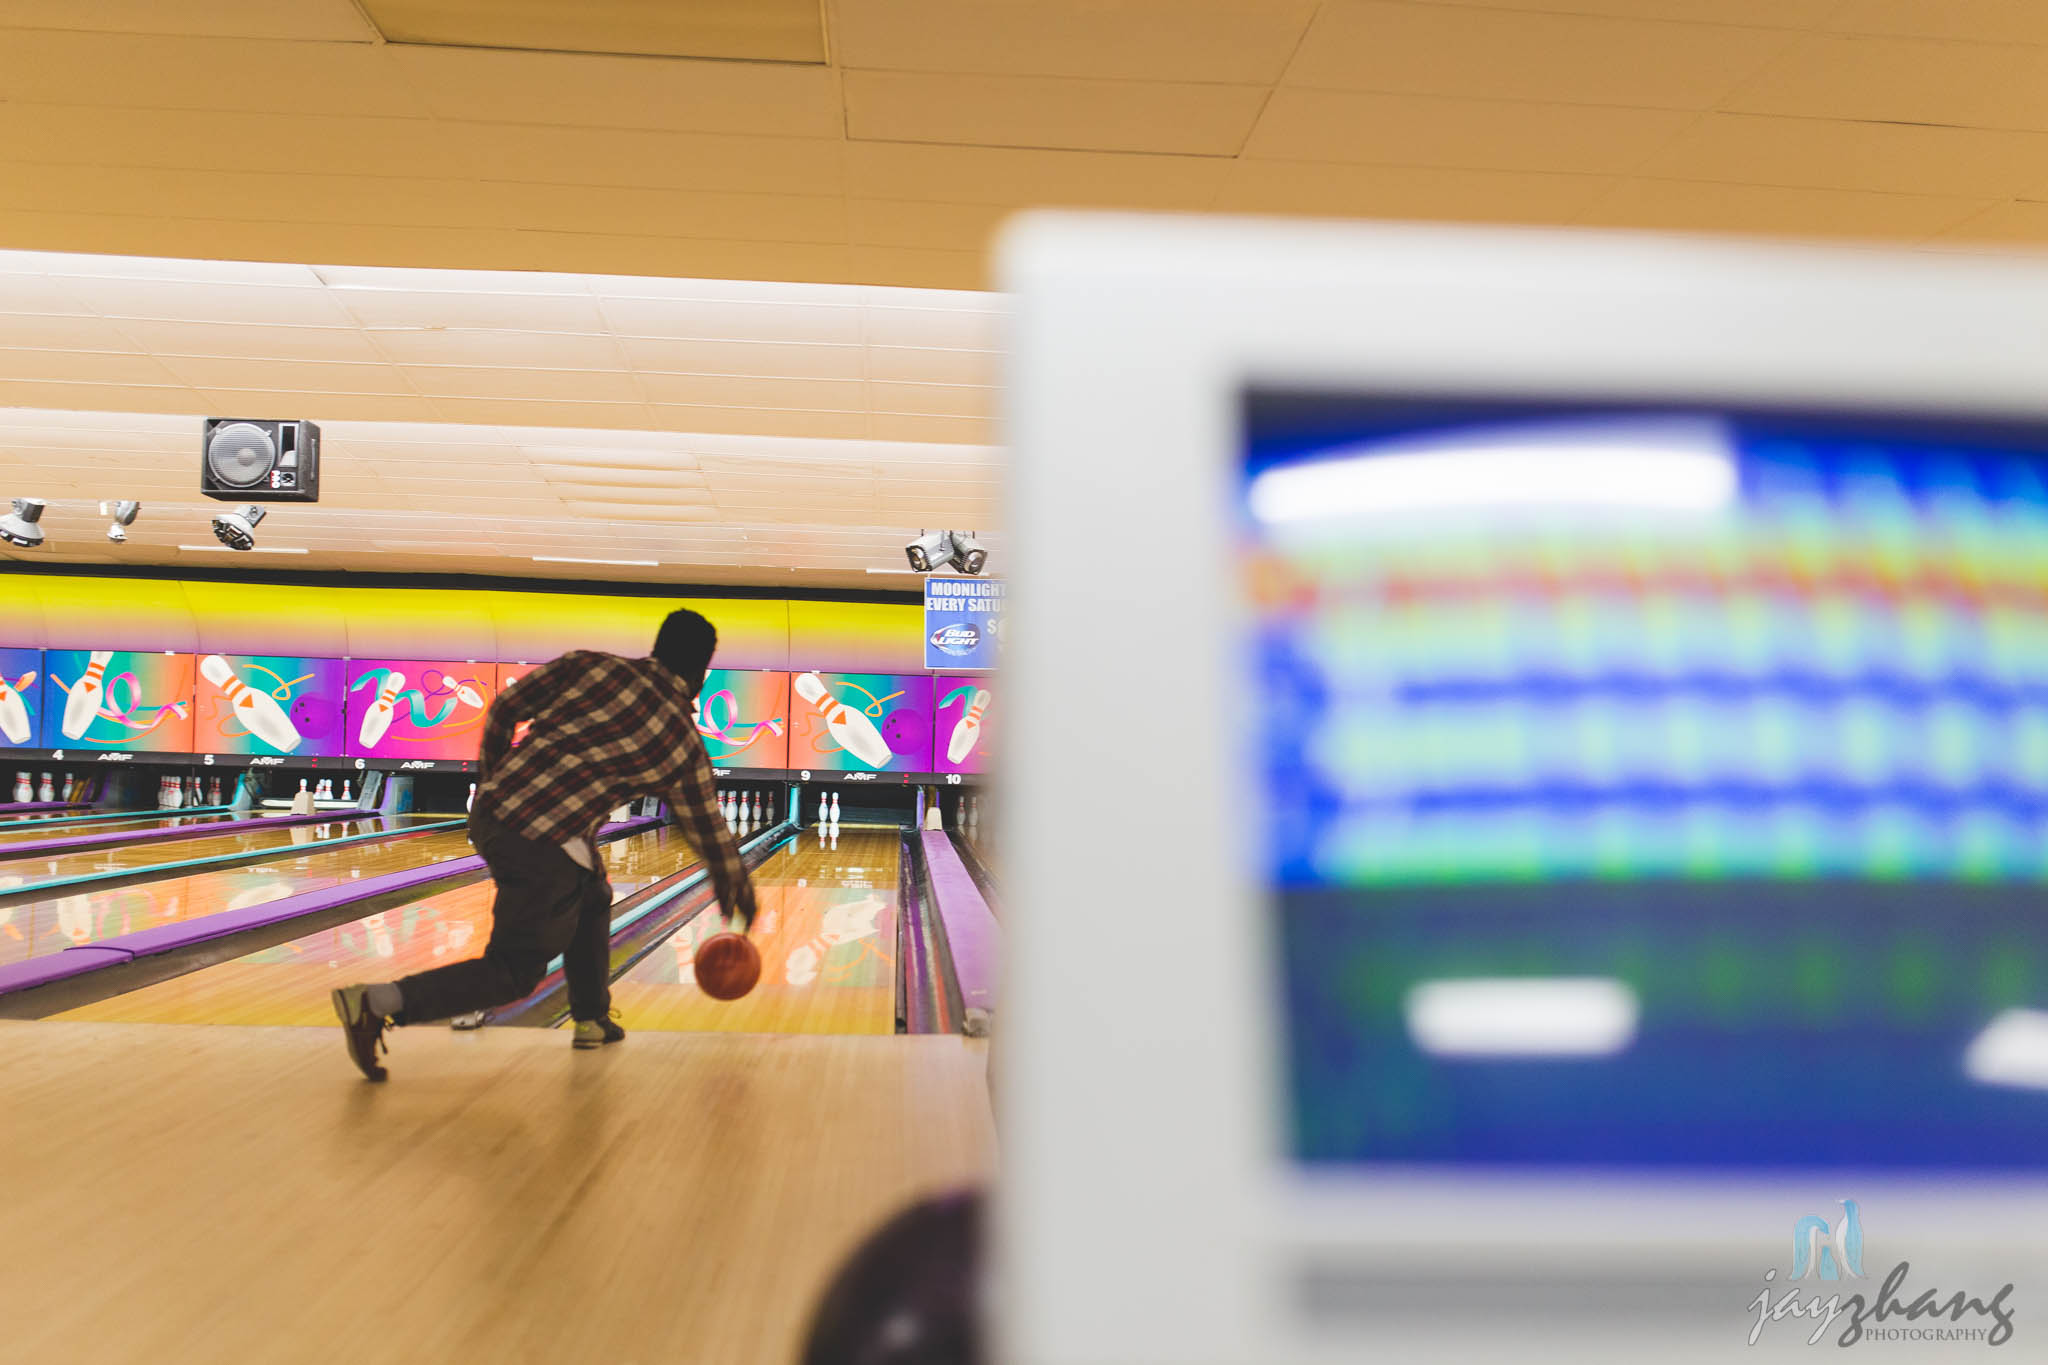 Day 319 - Bowling